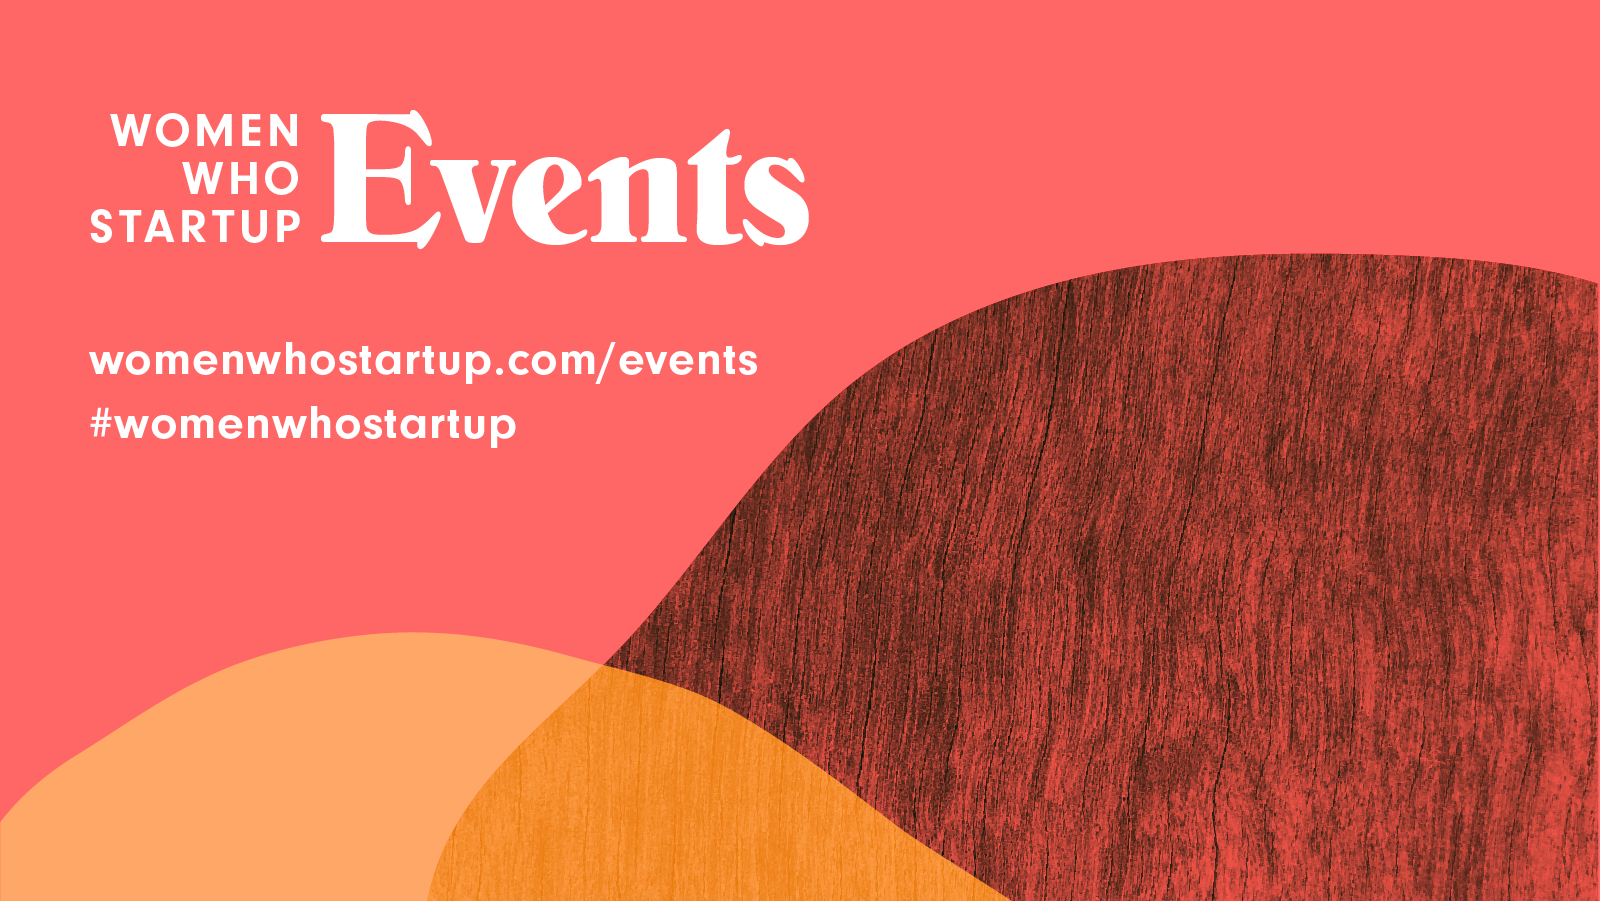 Women Who Startup Events